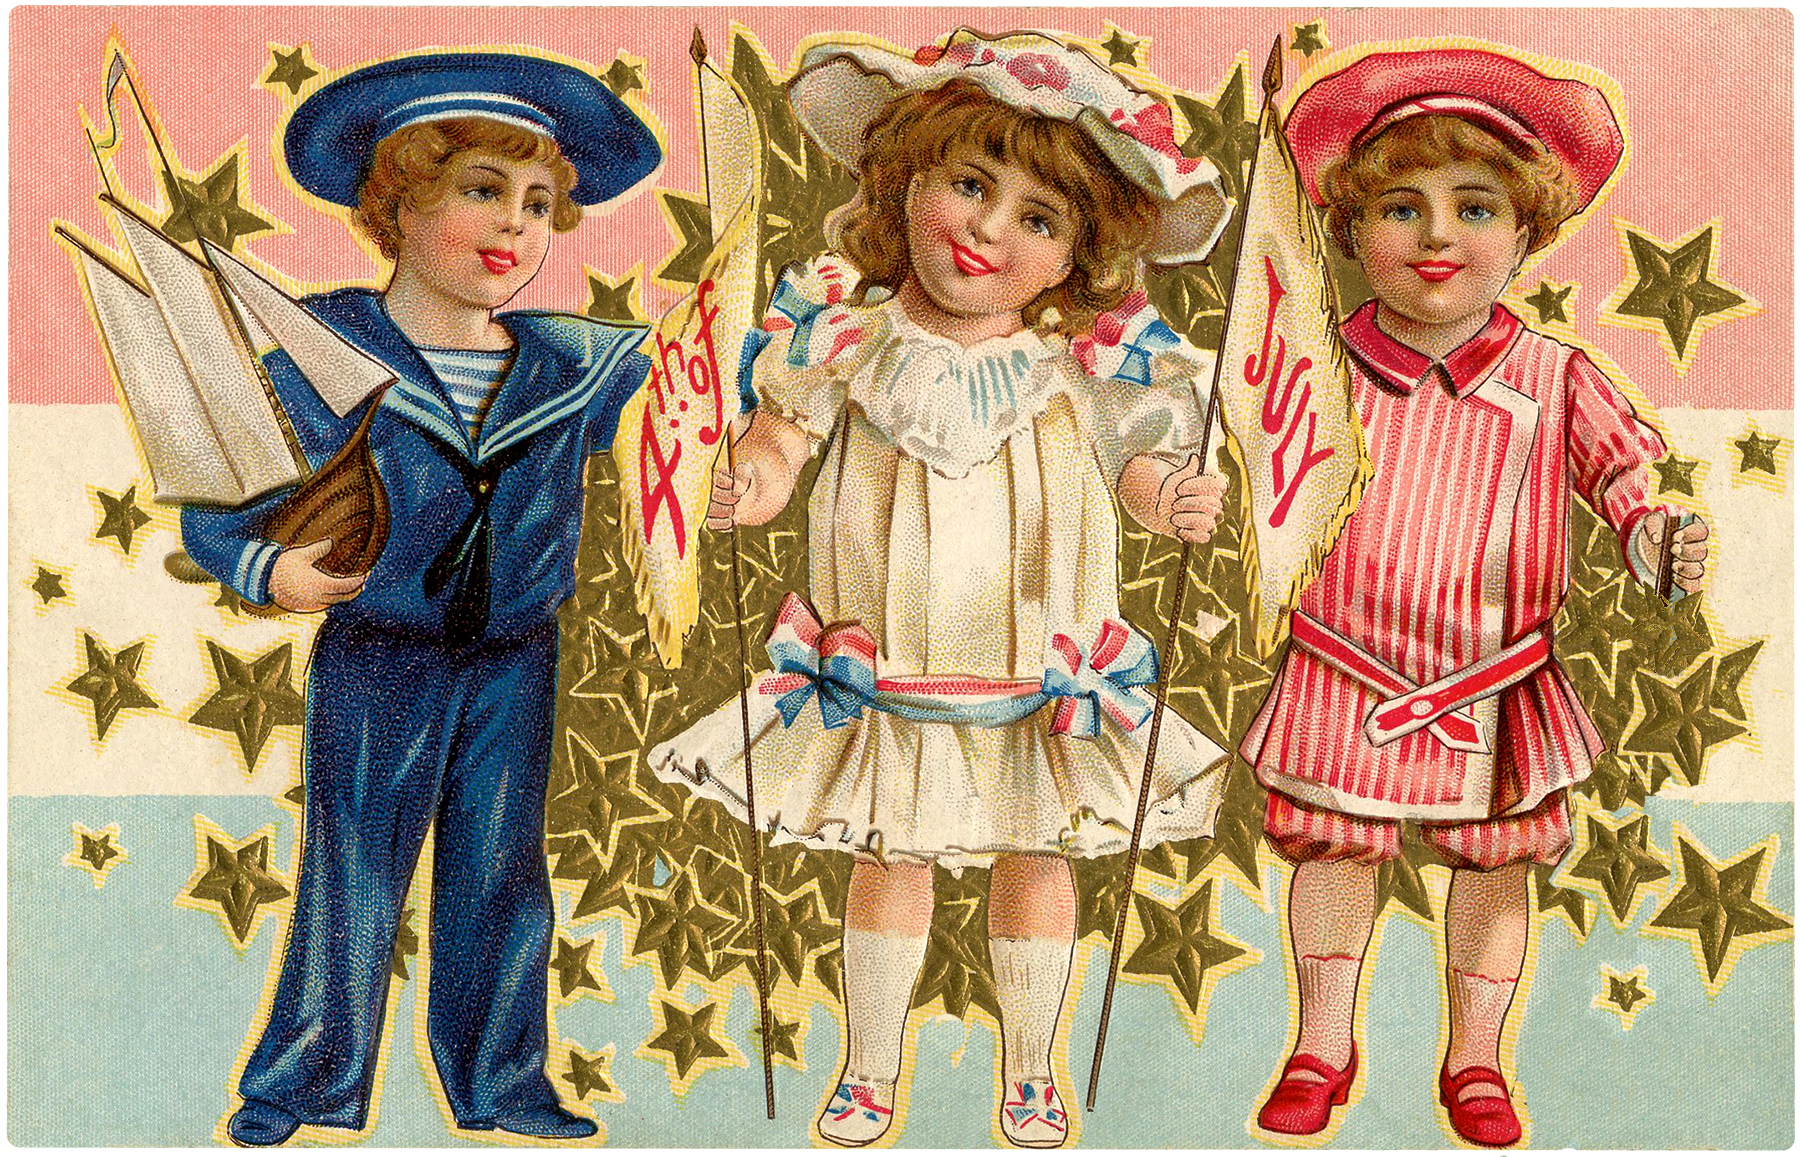 Vintage July 4th Kids Image